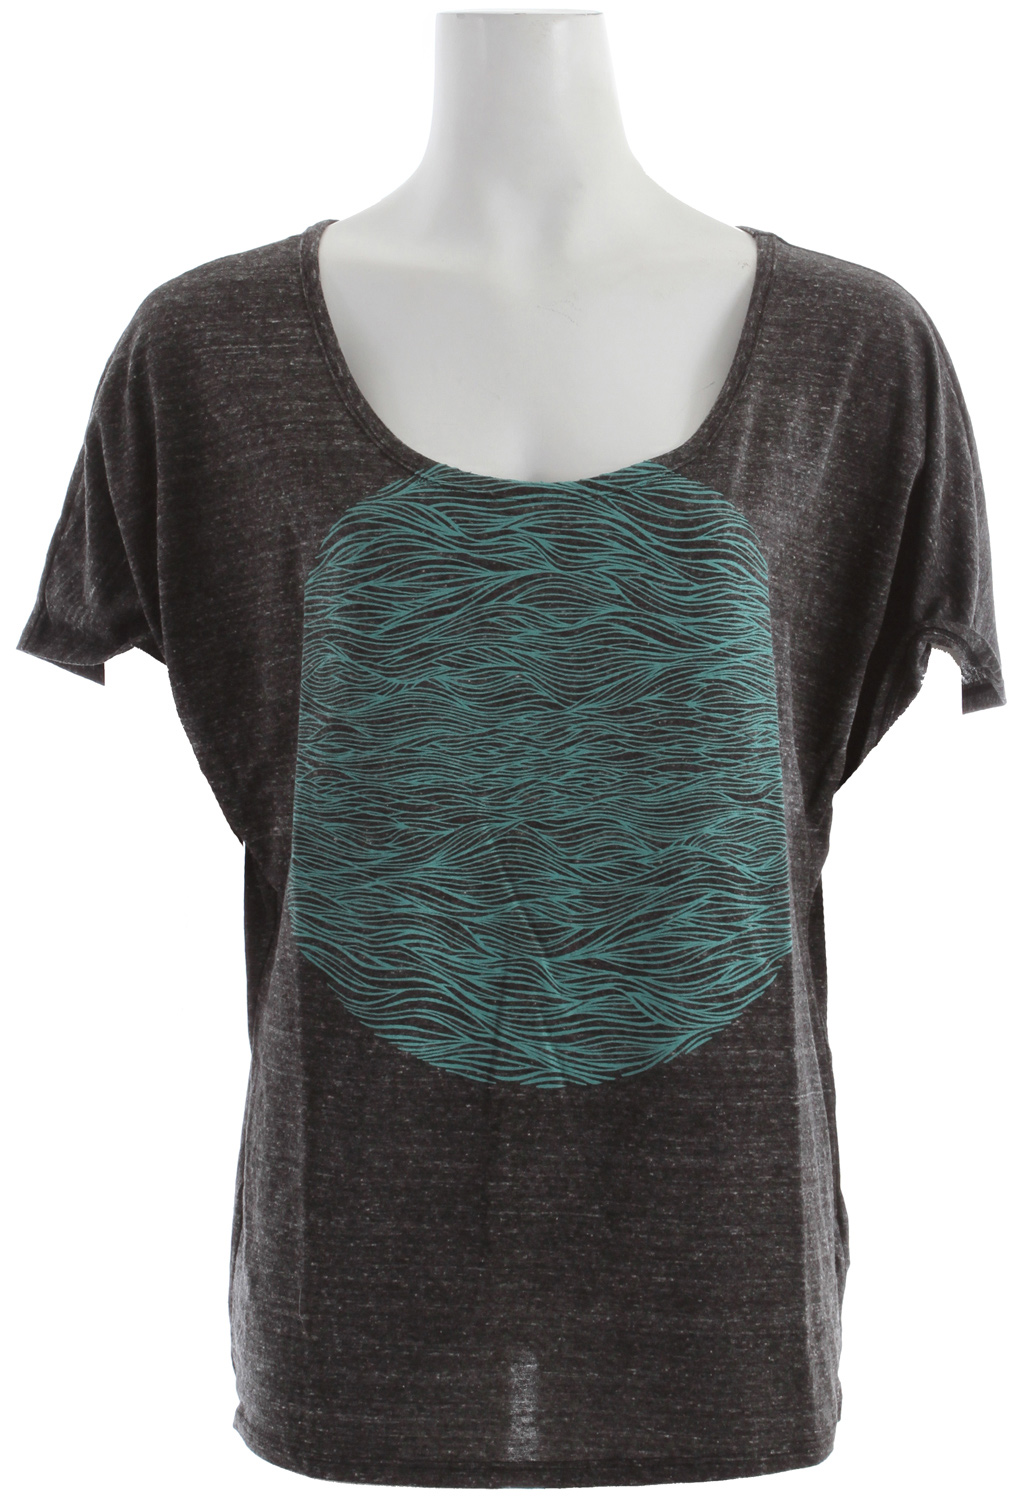 "Surf Key Features of the Roxy Waves On Waves T-Shirt: Triblend jersey Dolman tee with discharge 26"" hps - $26.95"